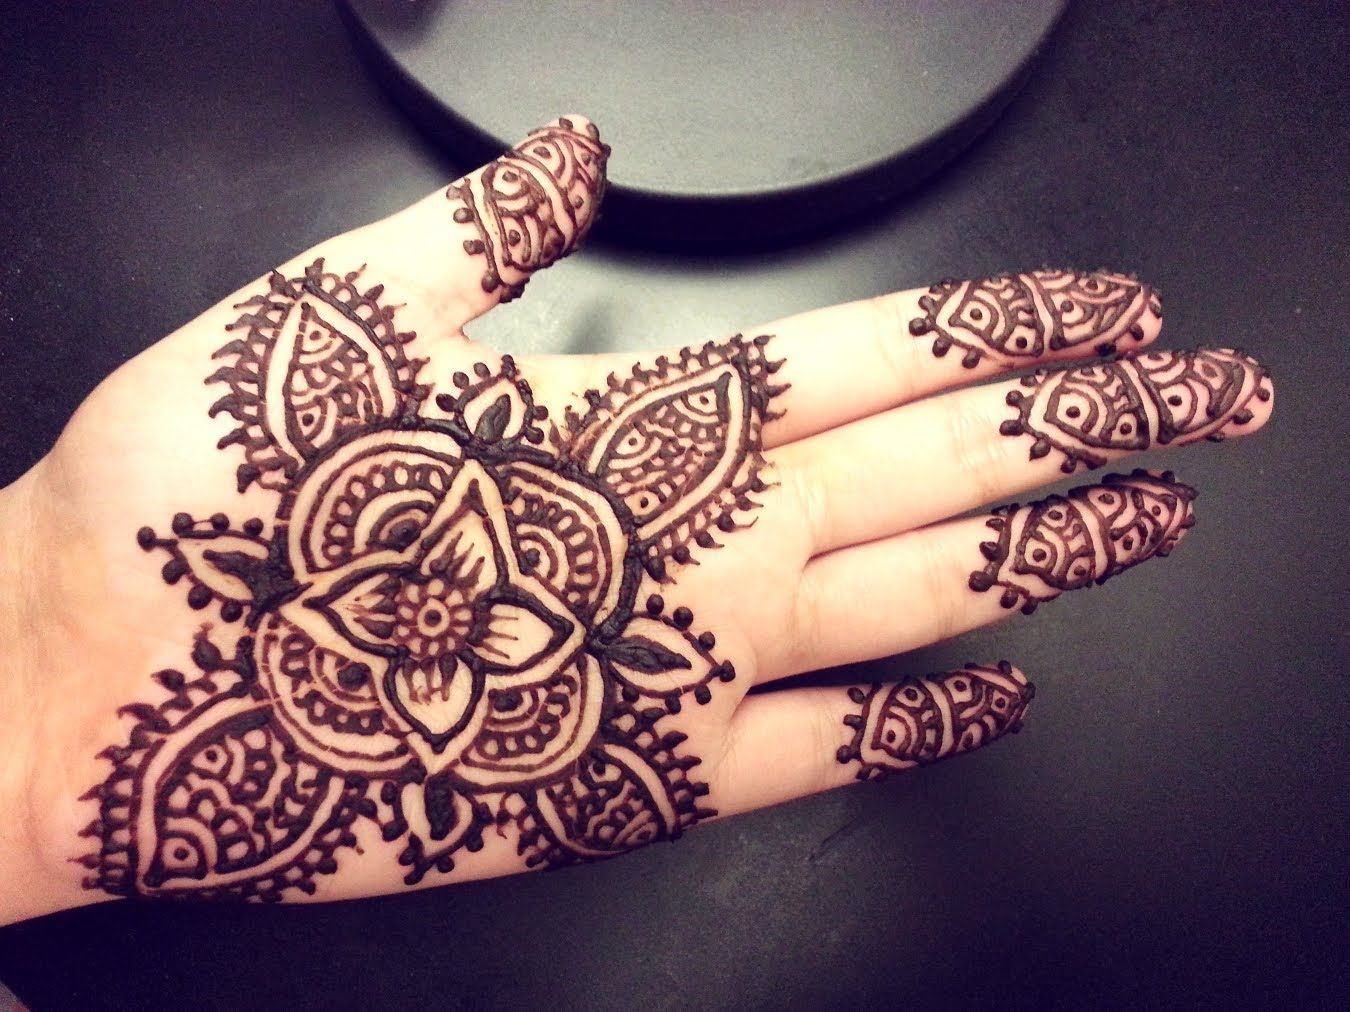 Cute Henna Tattoo Designs: Pretty Henna - Google Search